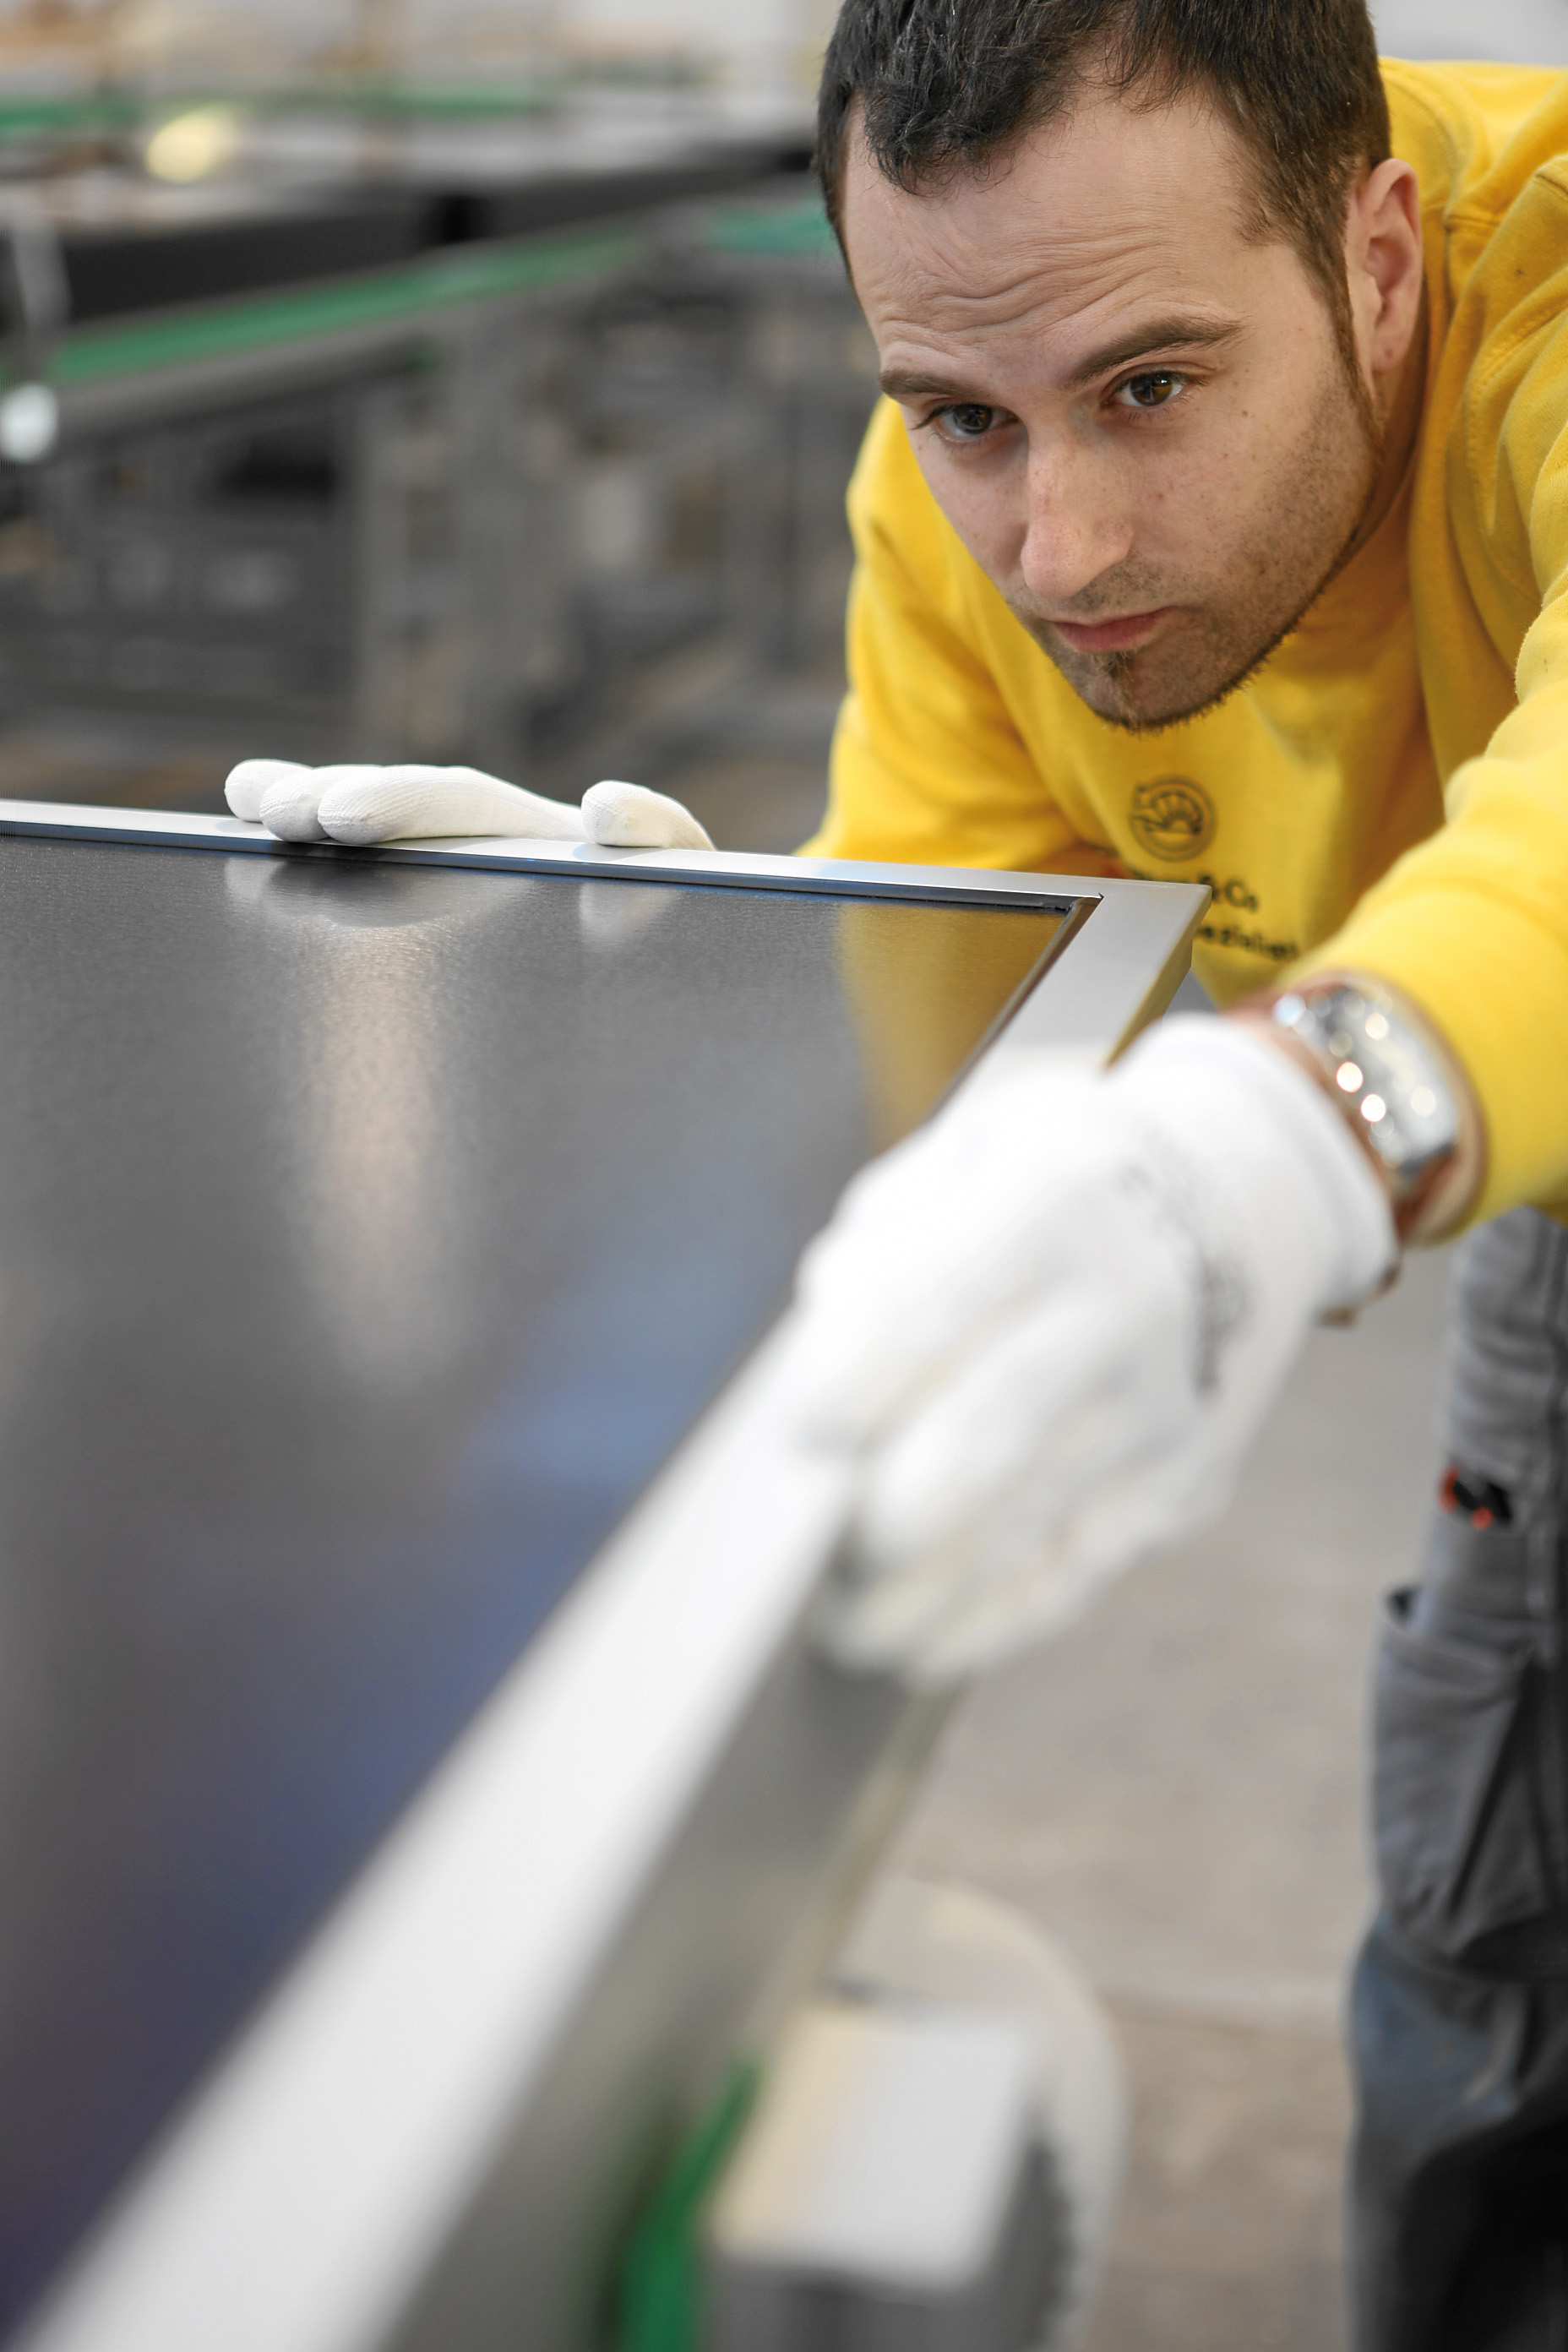 Meticulous quality control at Wagner Solar factory in Germany